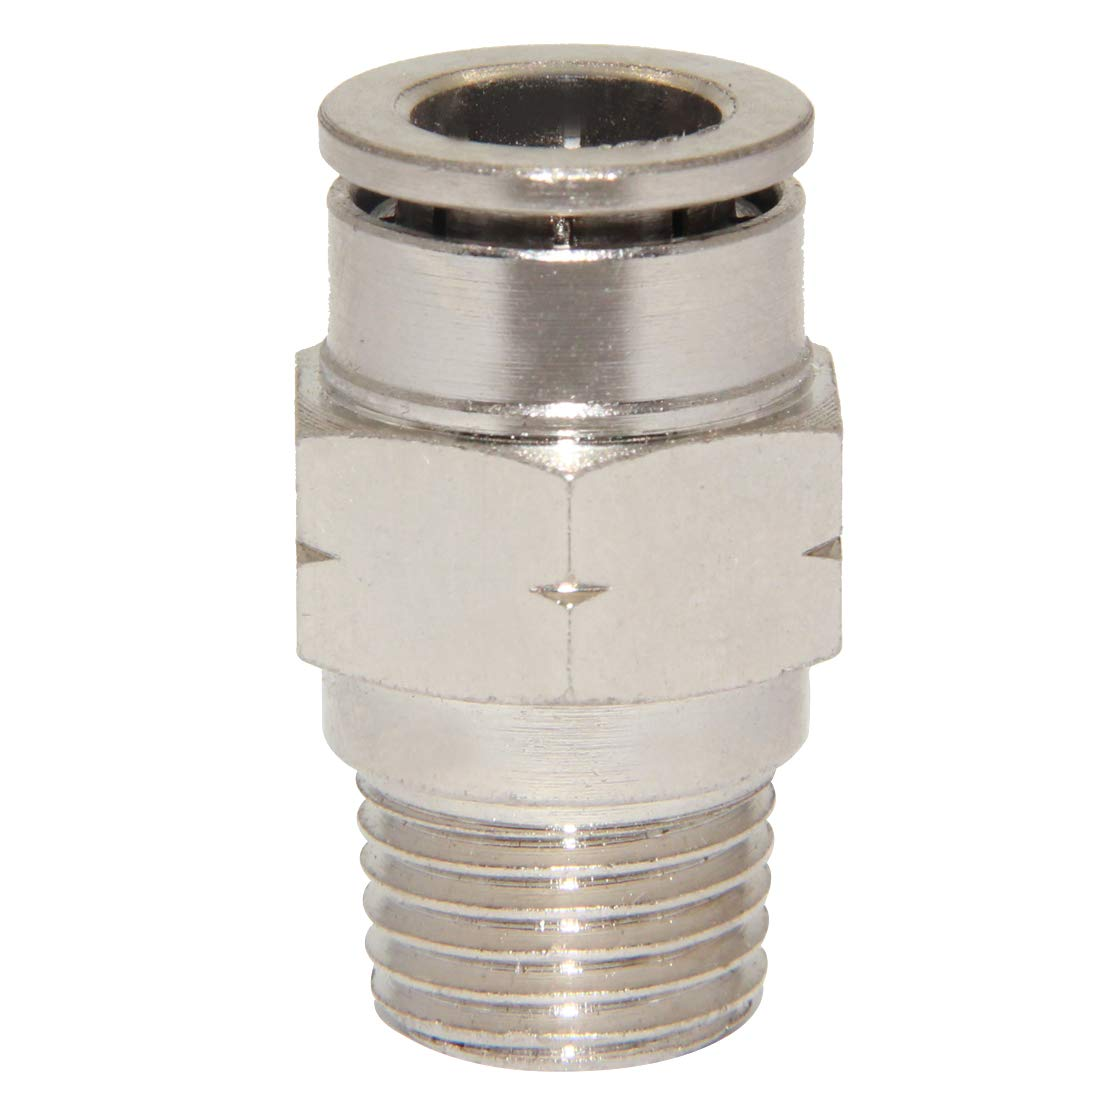 1//4 Tube OD x 1//8 NPT Male Thread Straight Push Lock Fitting Pack of 5 Beduan Pneumatic BPC Nickel-Plated Brass Push to Connect Air Fitting